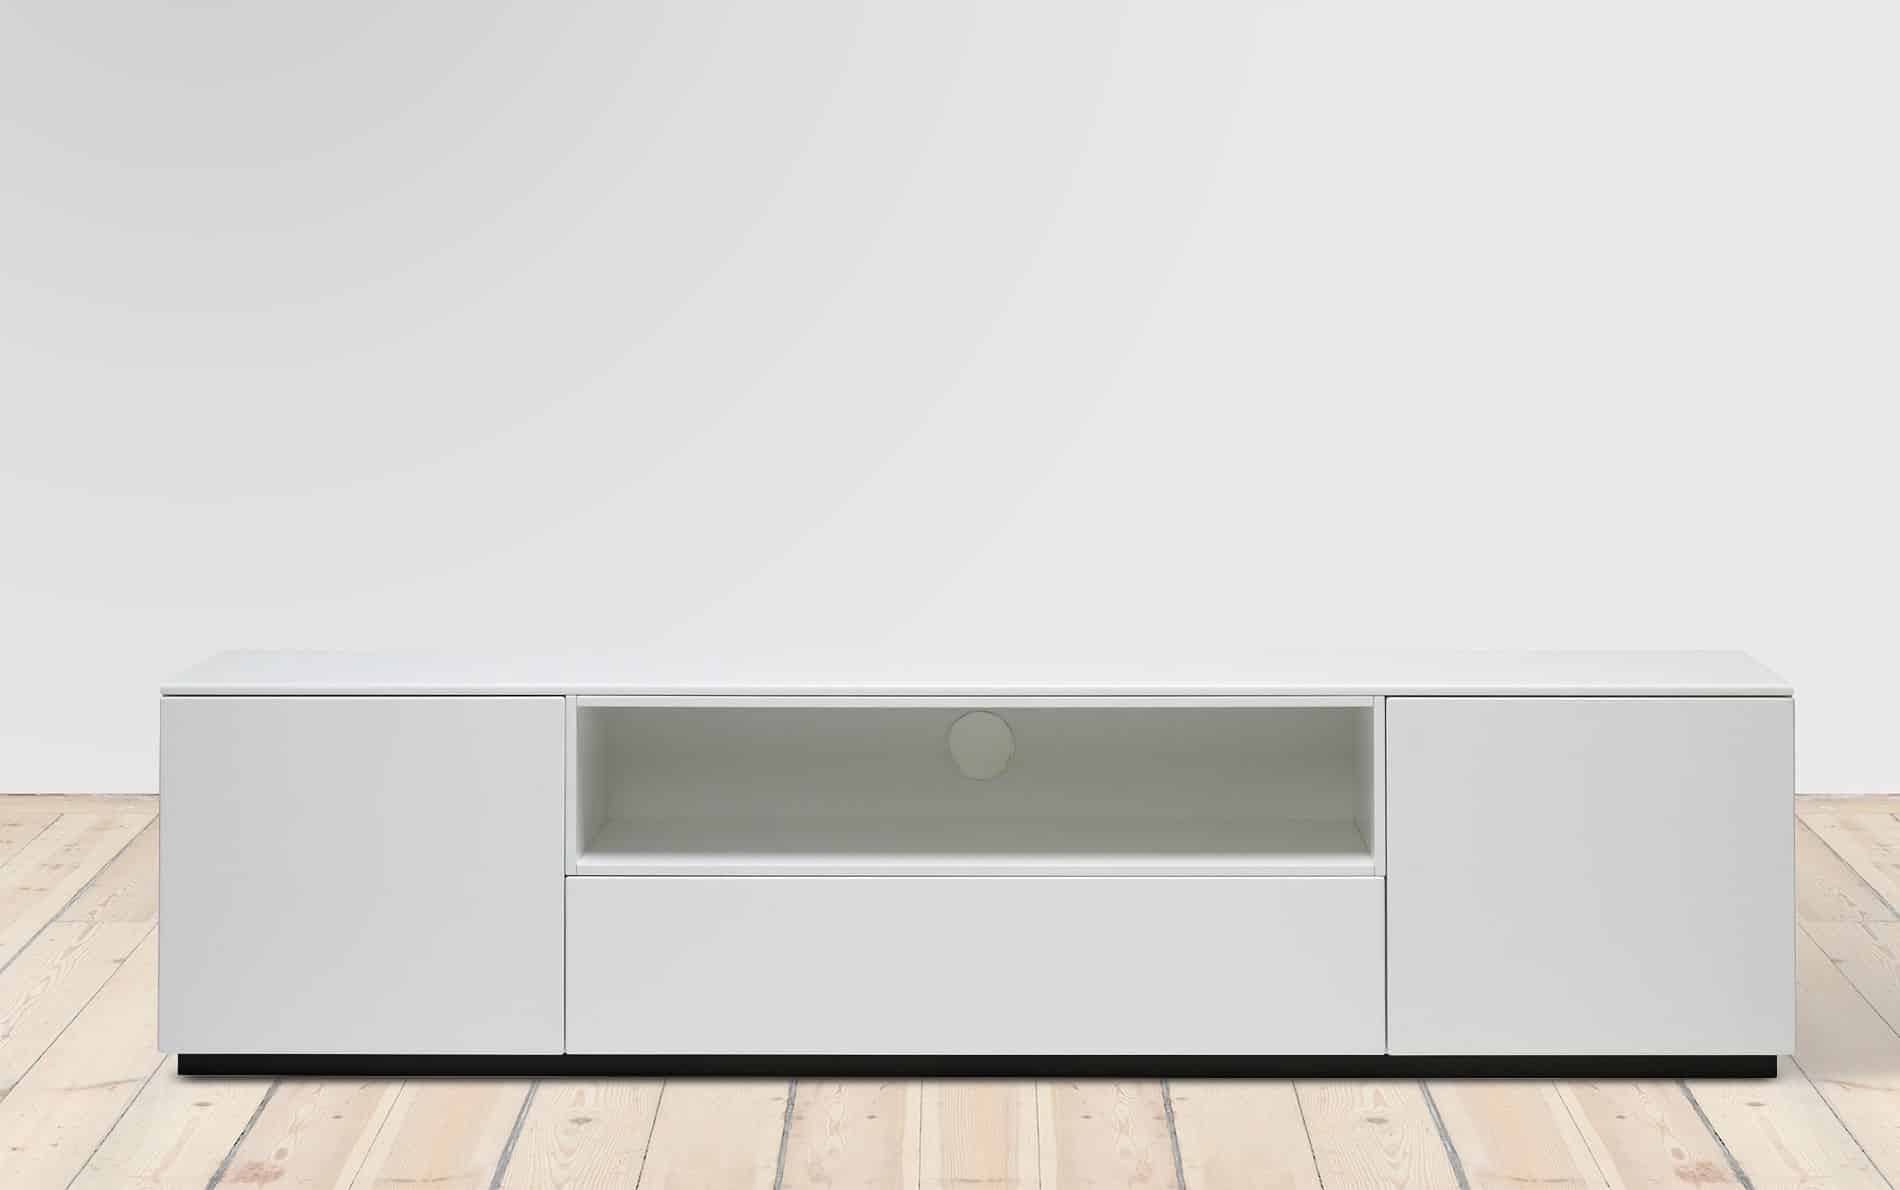 Fernsehrack Glas Lowboard 110 Cm Top With Lowboard 110 Cm Fabulous With